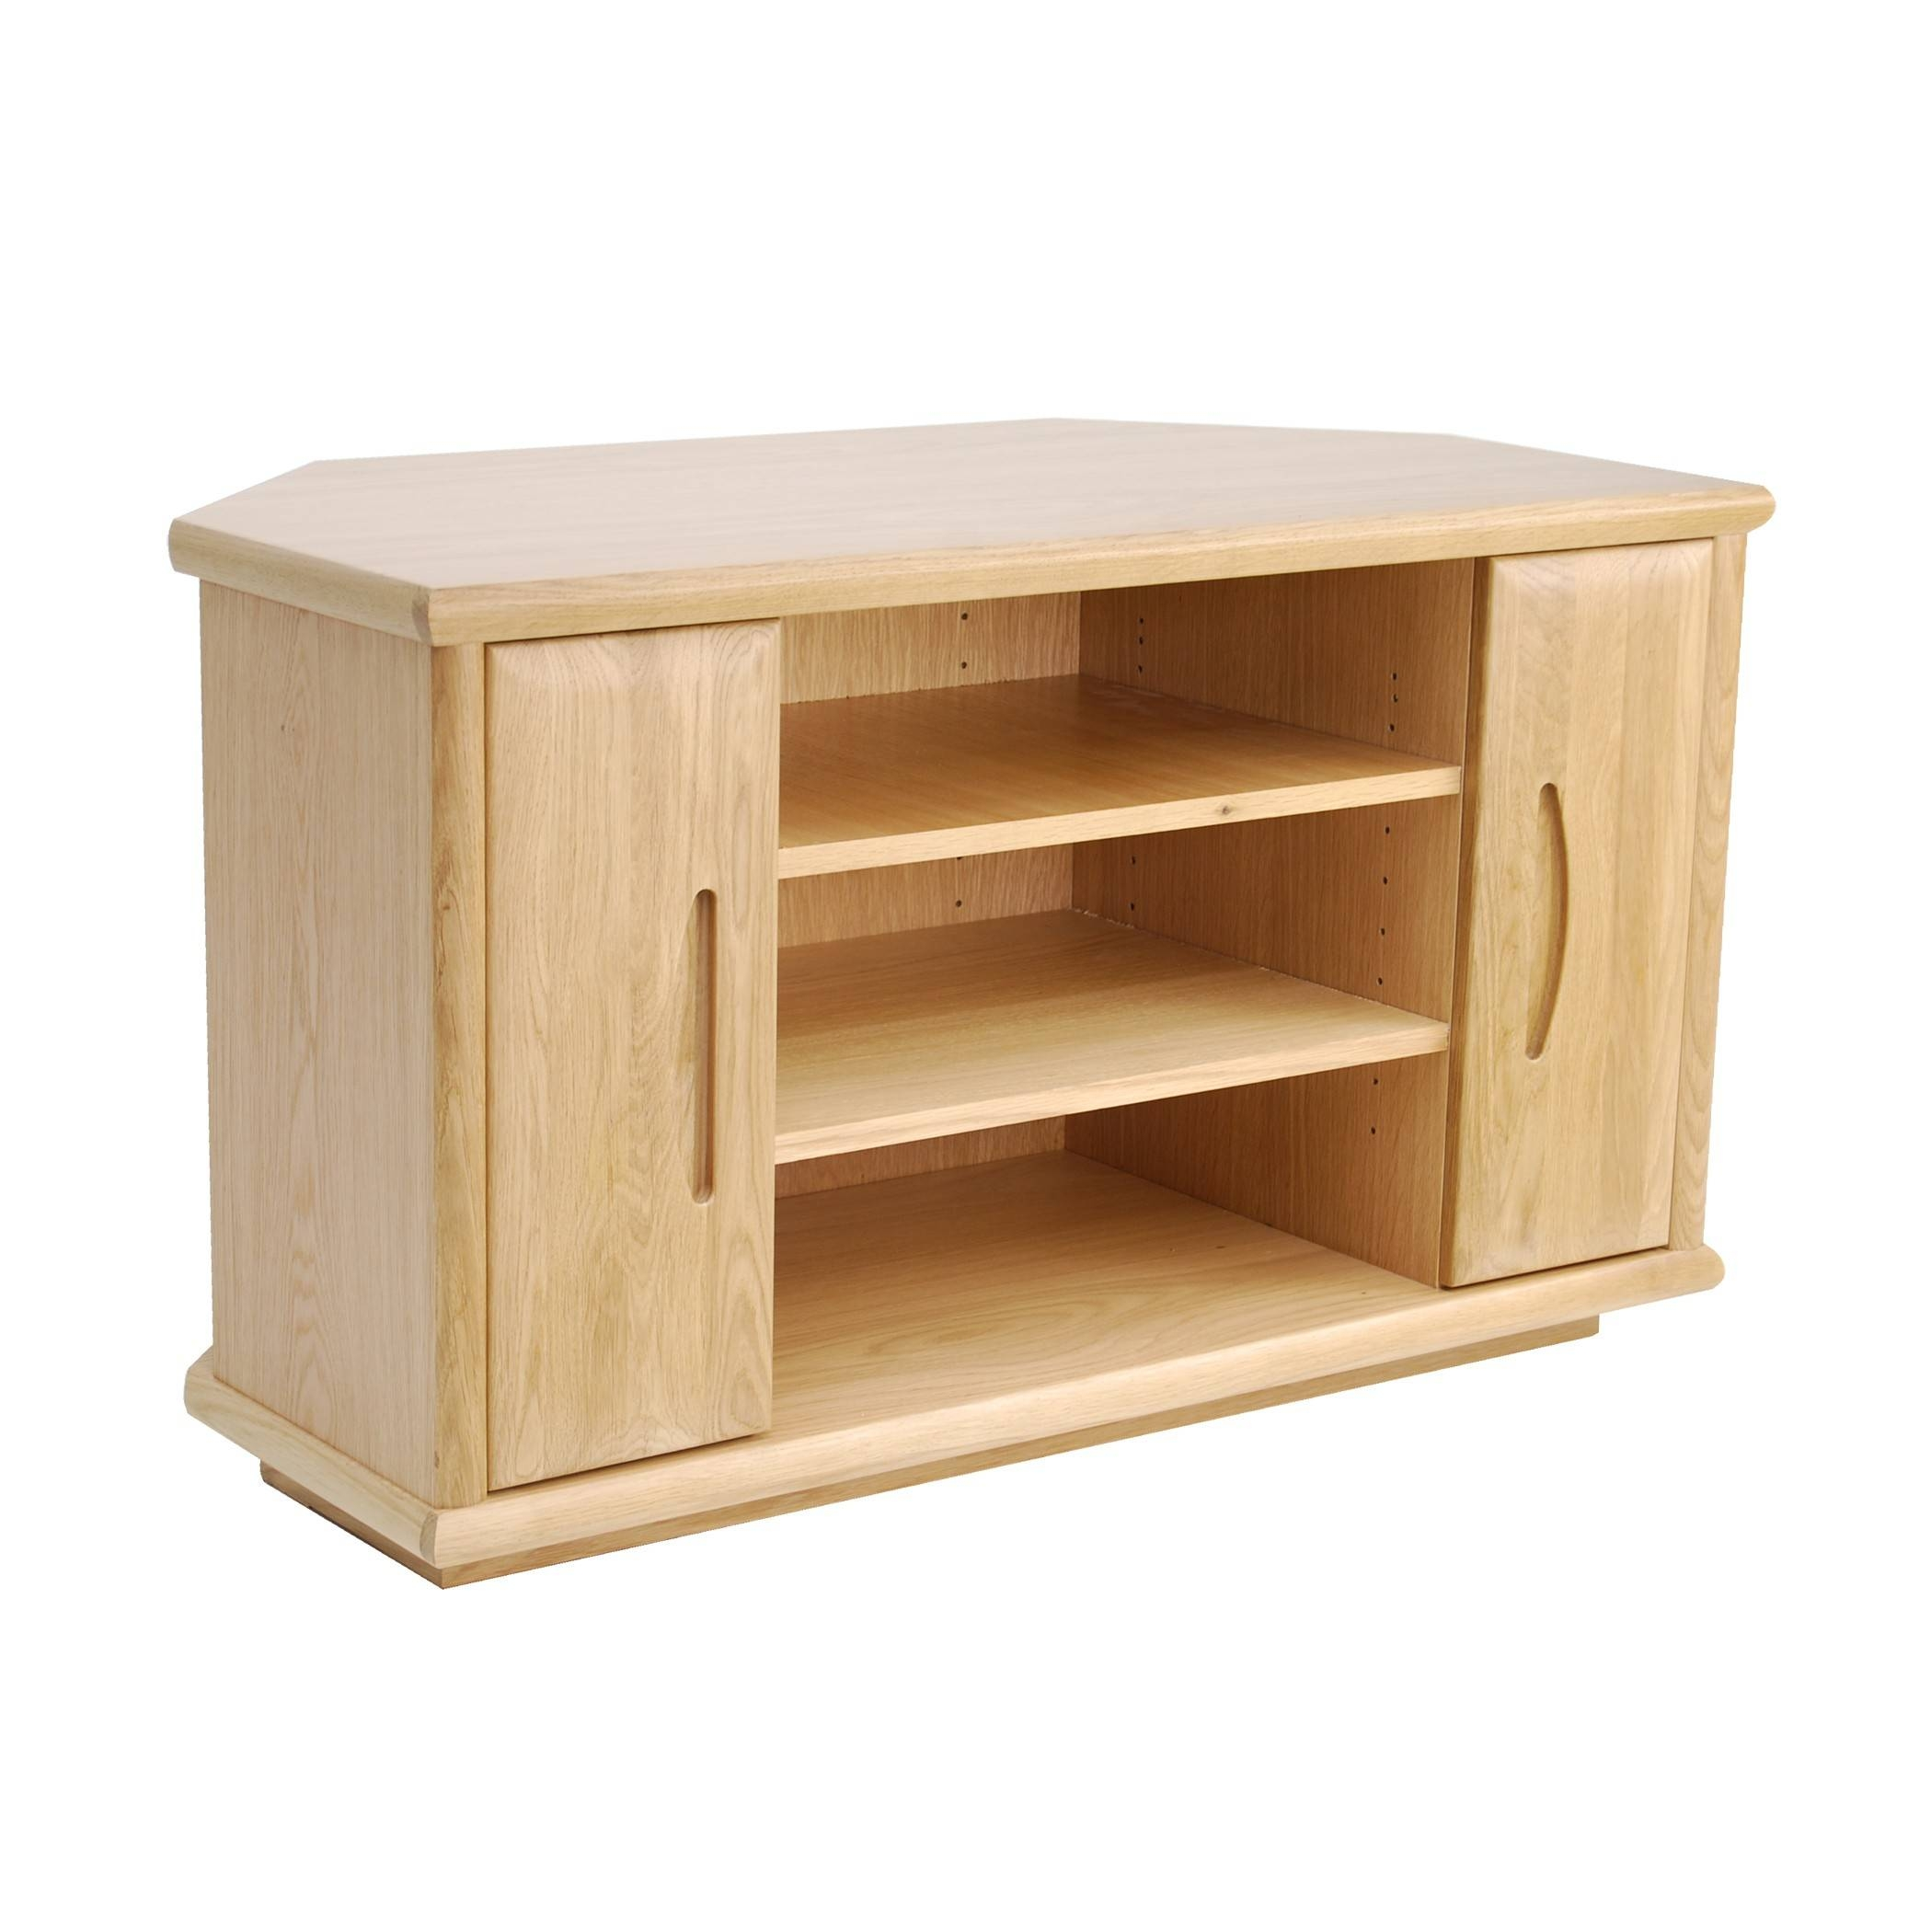 Oak Corner Tv Stand | Gola Furniture Uk Regarding Cheap Oak Tv Stands (View 6 of 15)